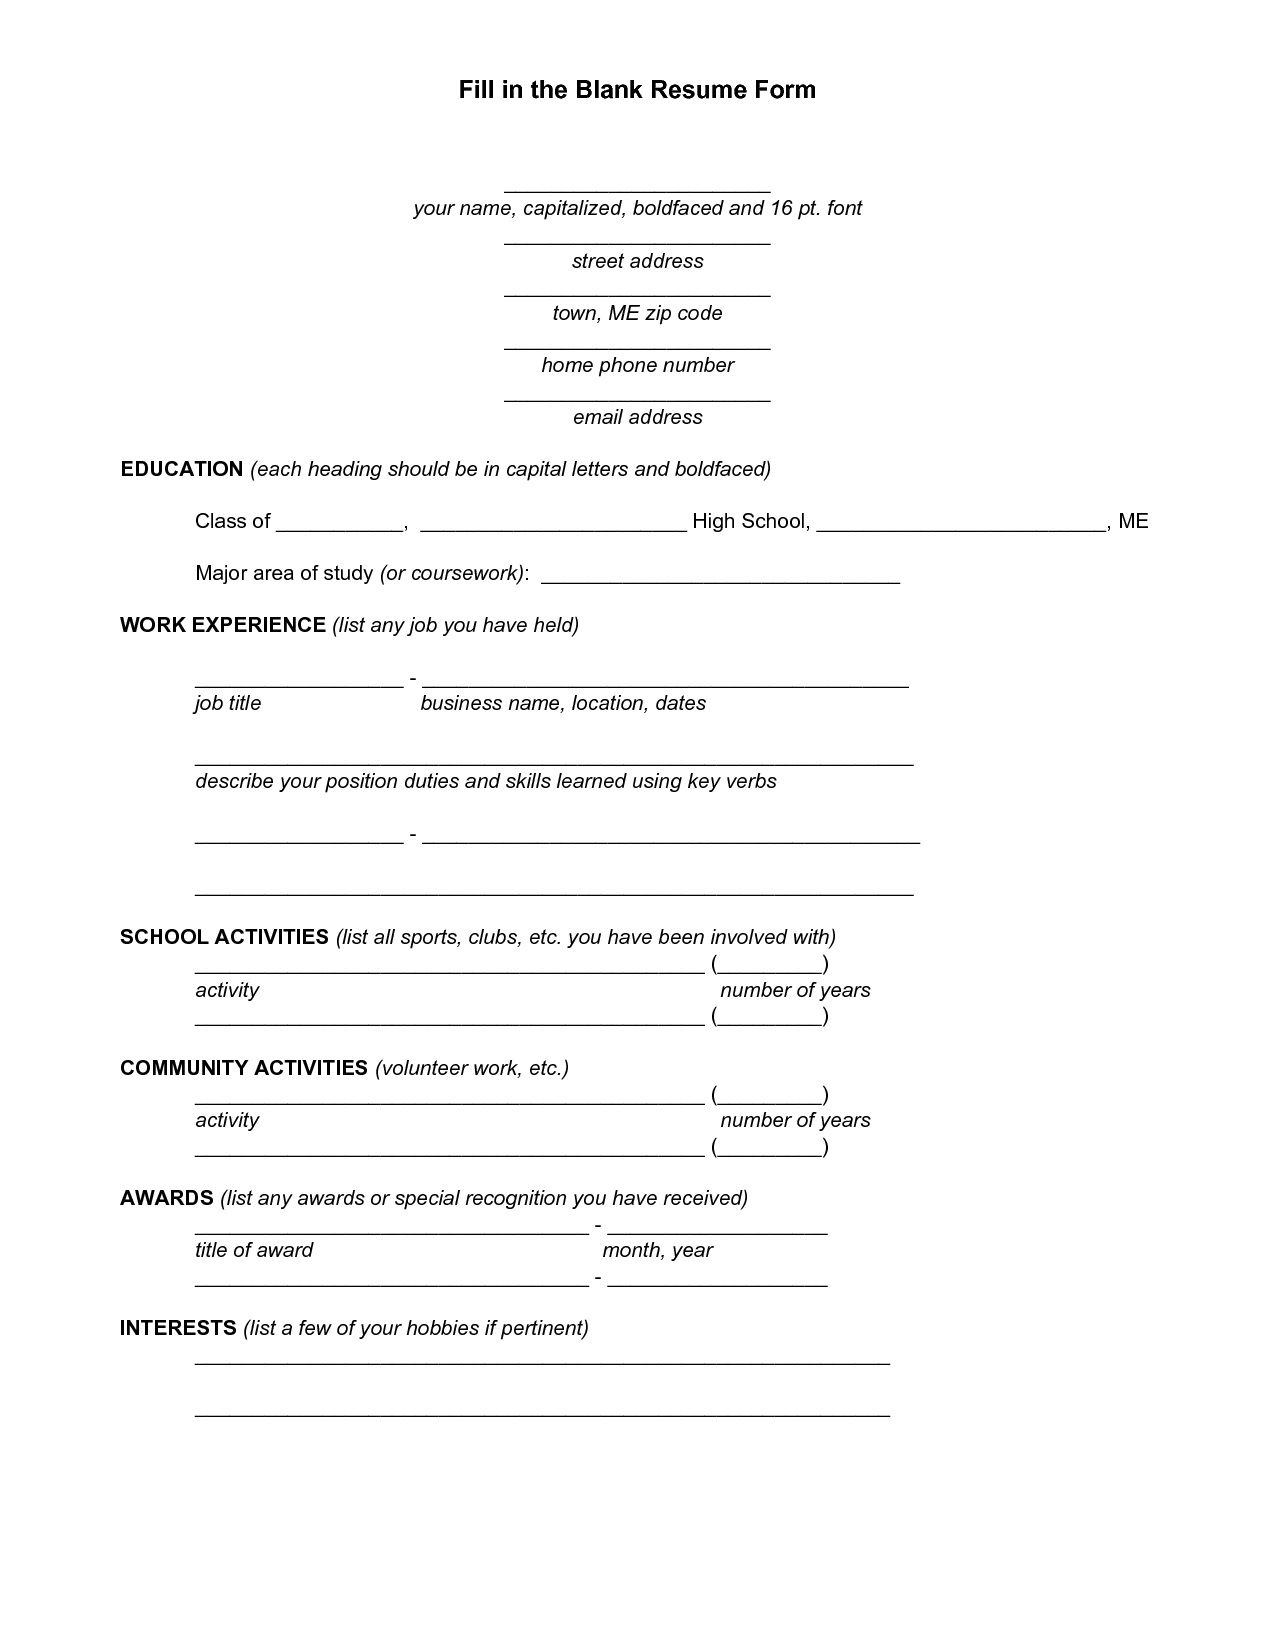 blank job resume form we provide as reference to make correct and good quality resume  also will